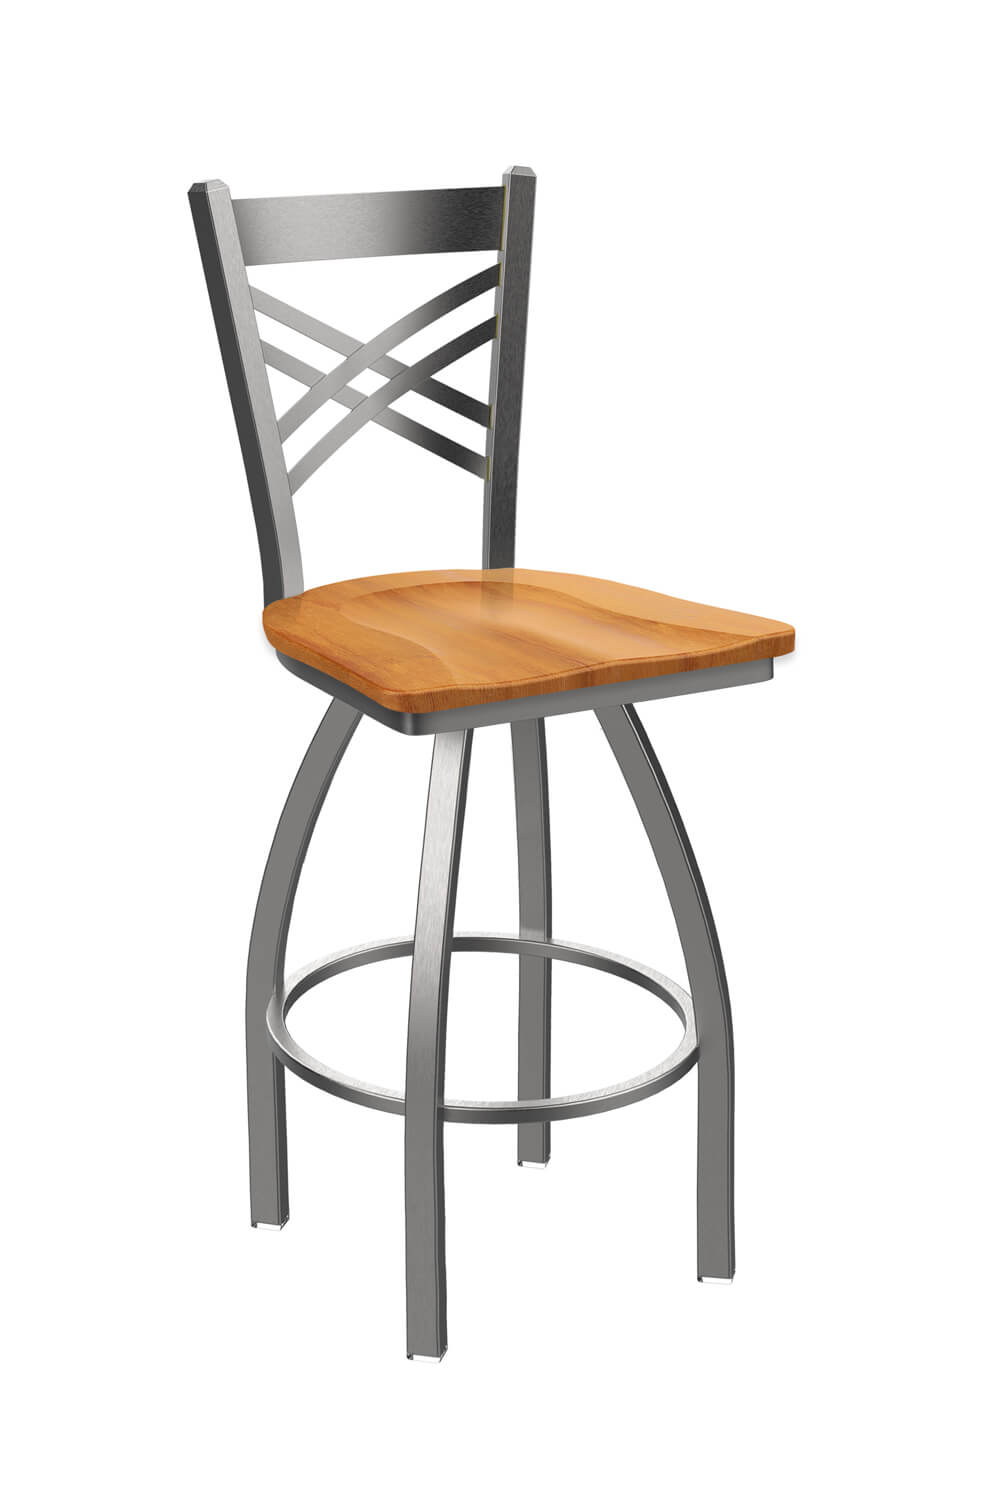 Swell Catalina Swivel Stool 820 Squirreltailoven Fun Painted Chair Ideas Images Squirreltailovenorg